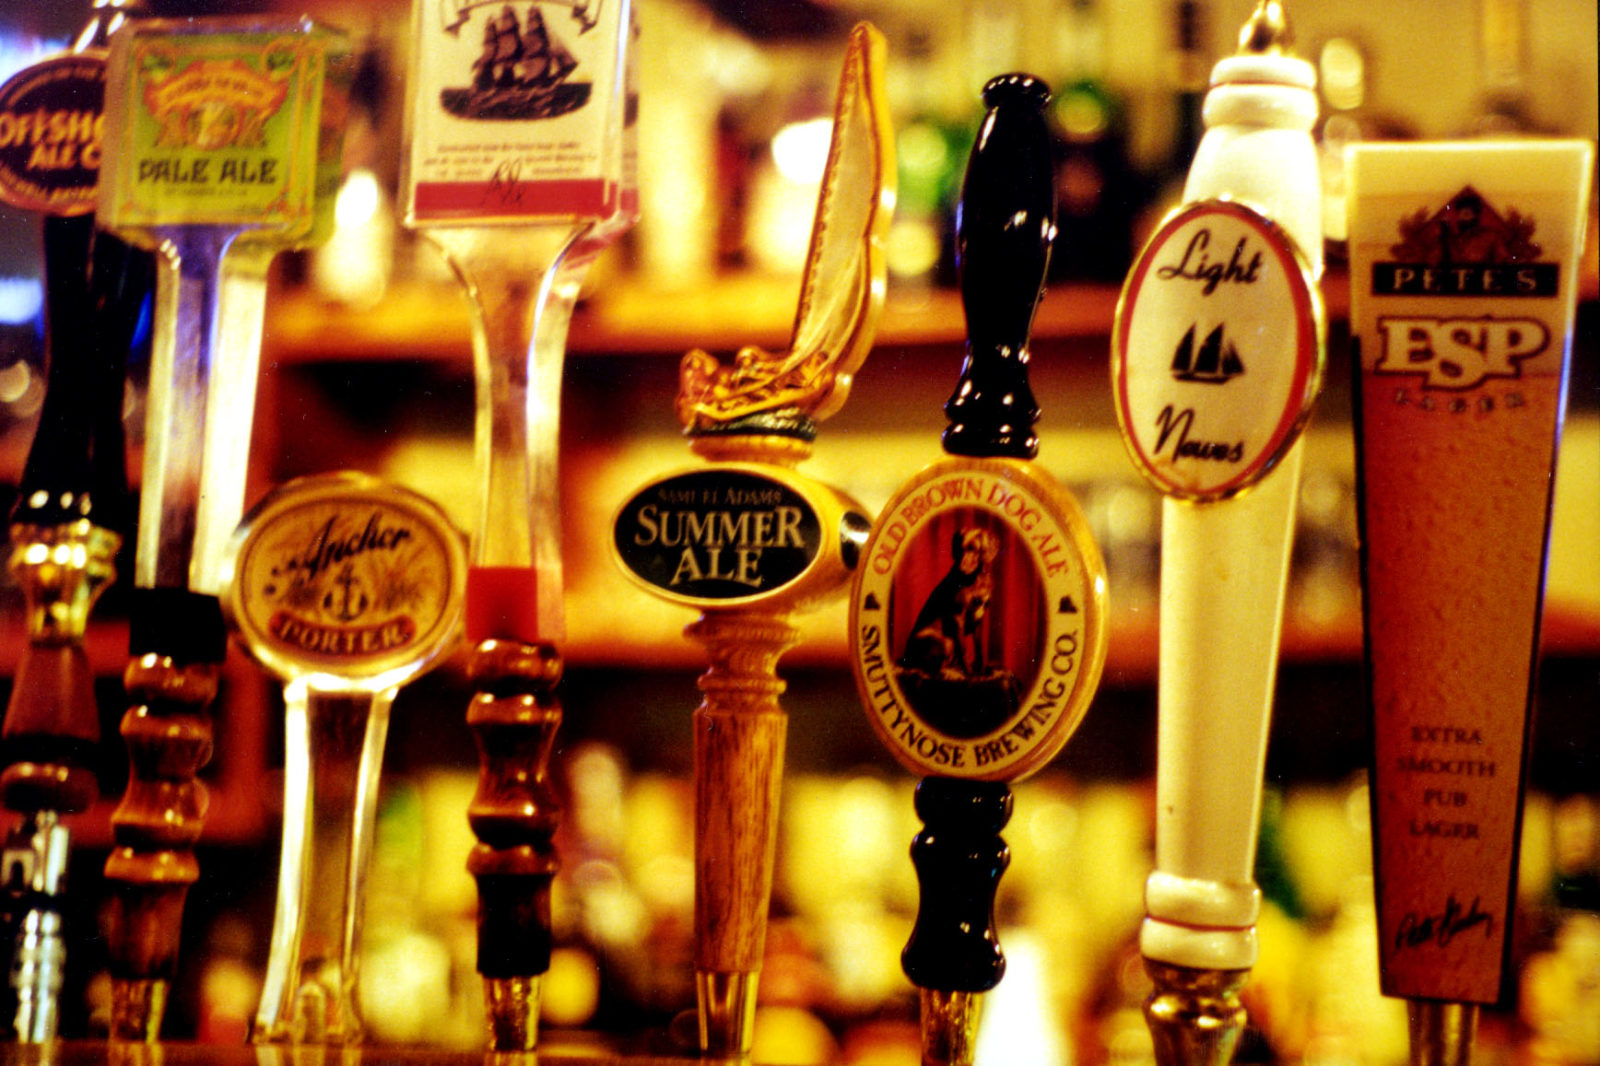 Draft Beer on Tap